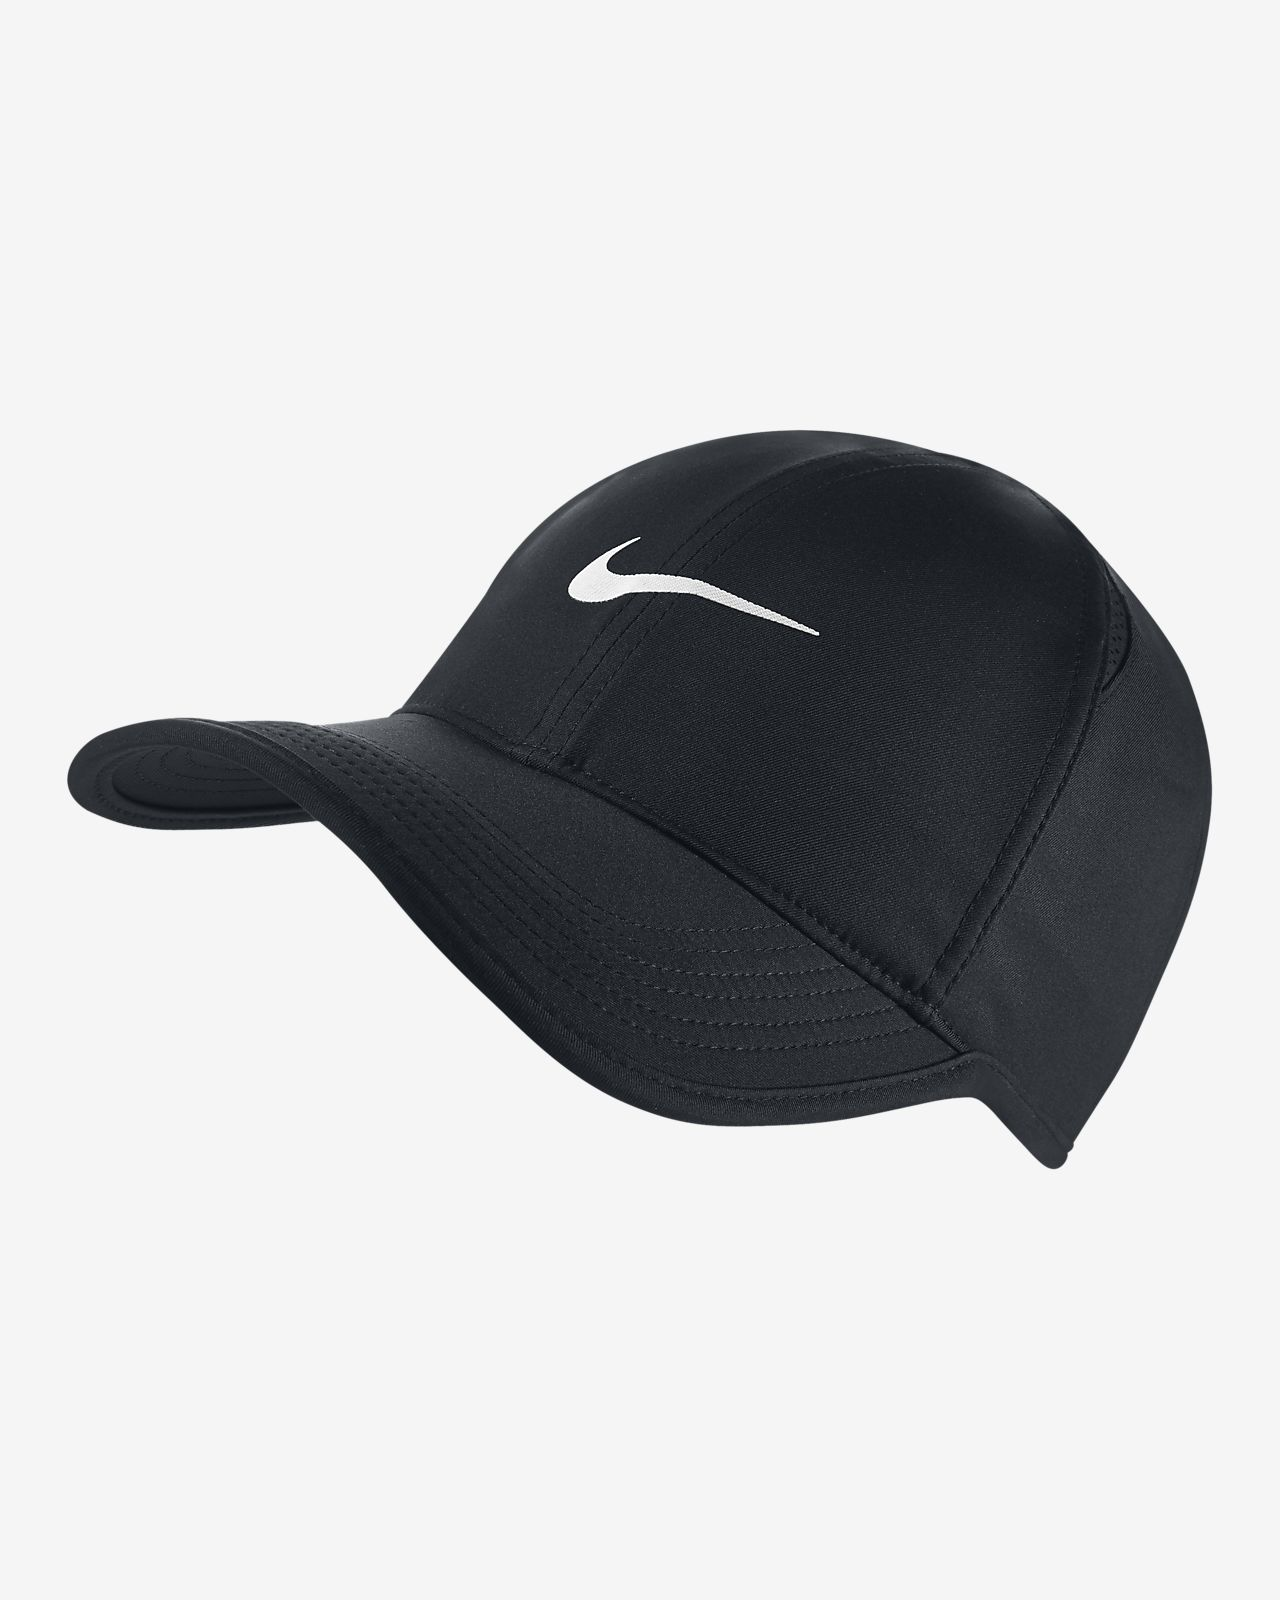 NikeCourt AeroBill Featherlight Tennis Cap